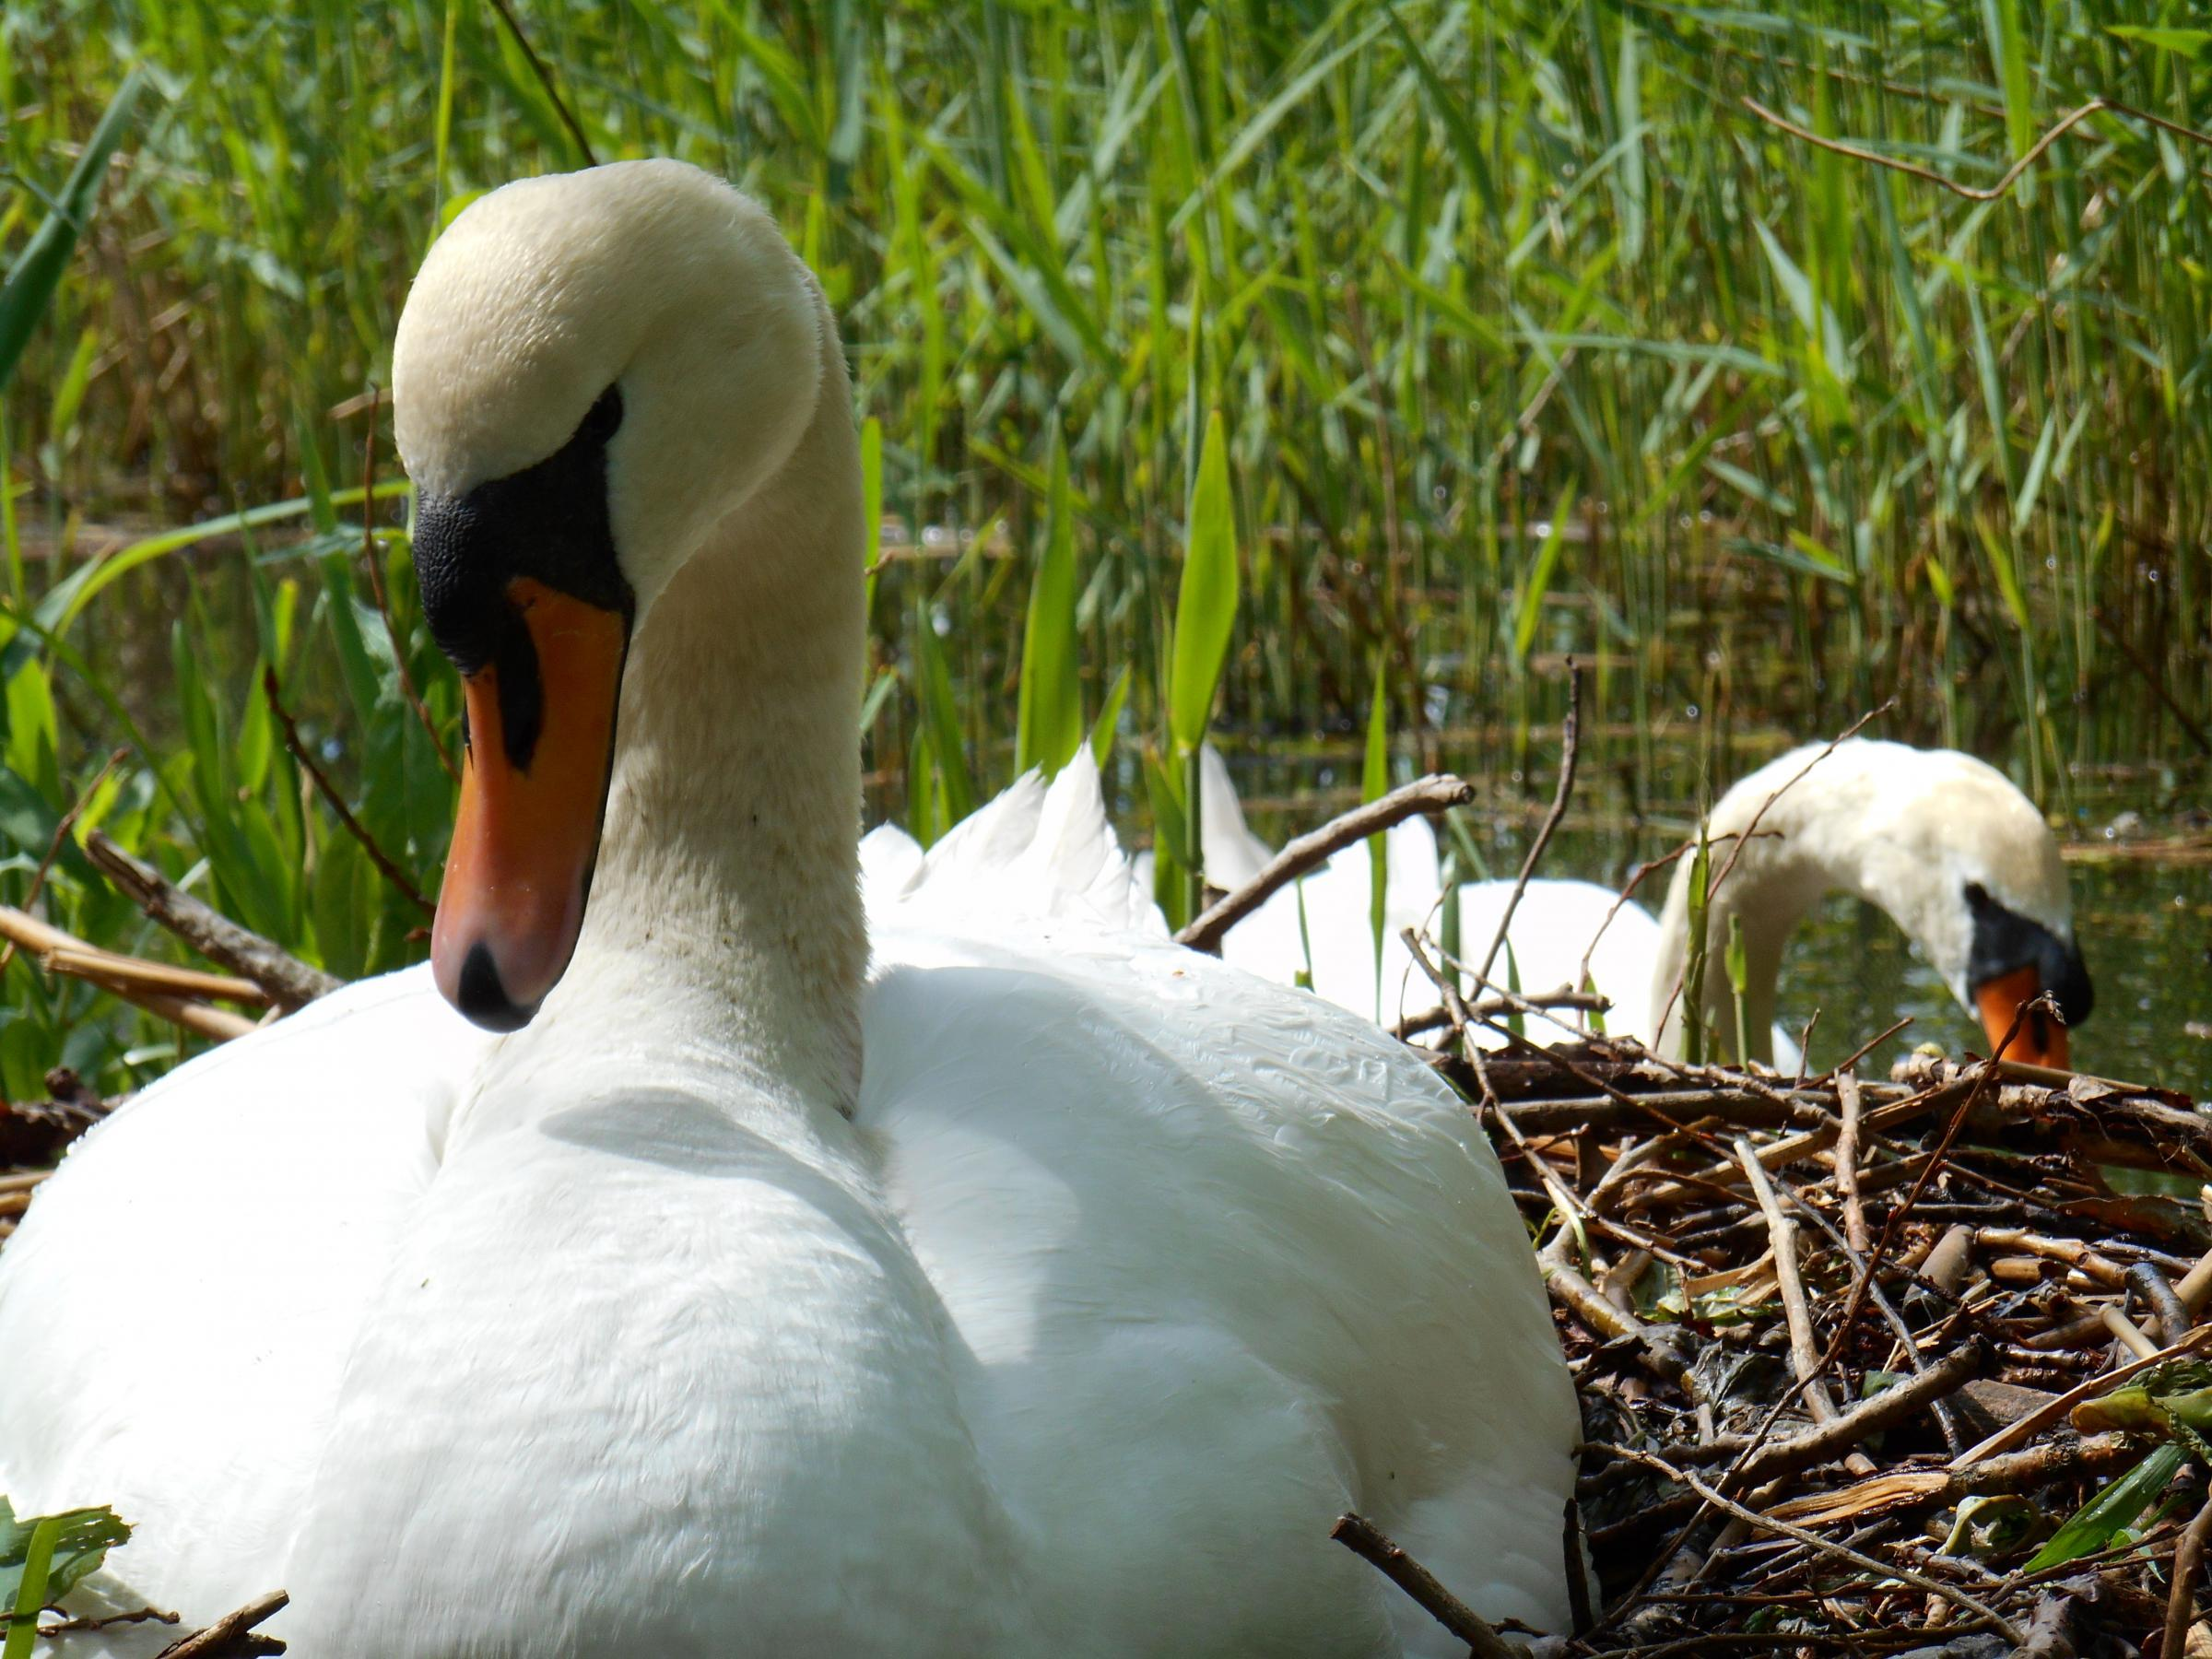 Swan and seven eggs disappear overnight from nature spot